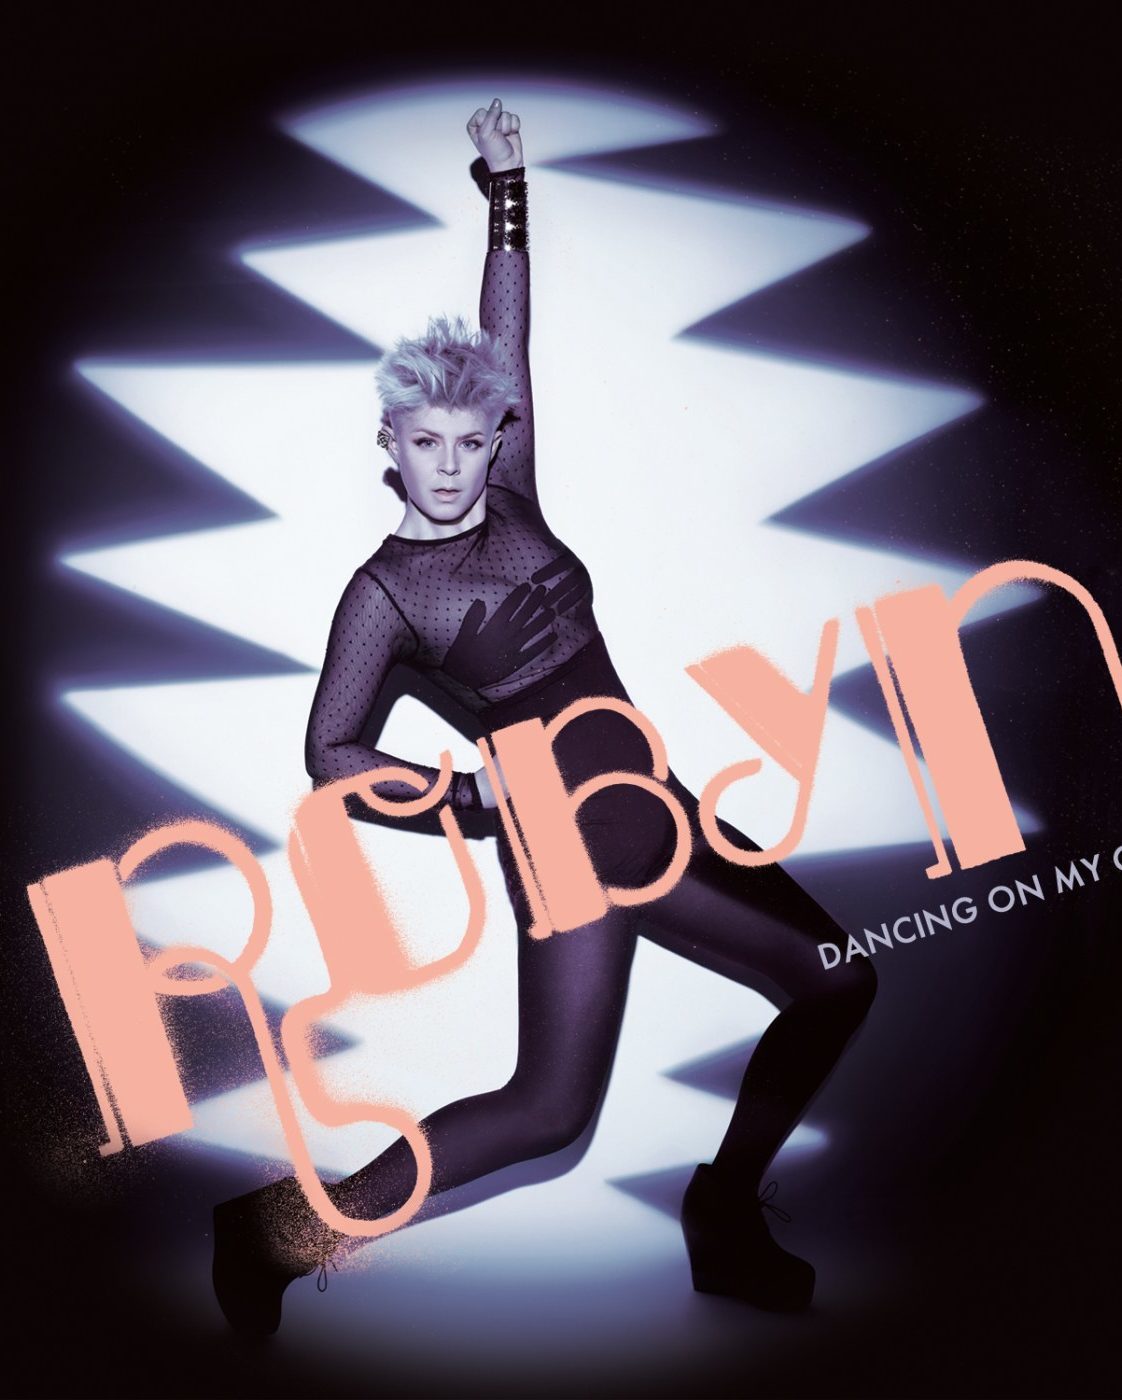 robyn-dancing-on-my-own-1571861141